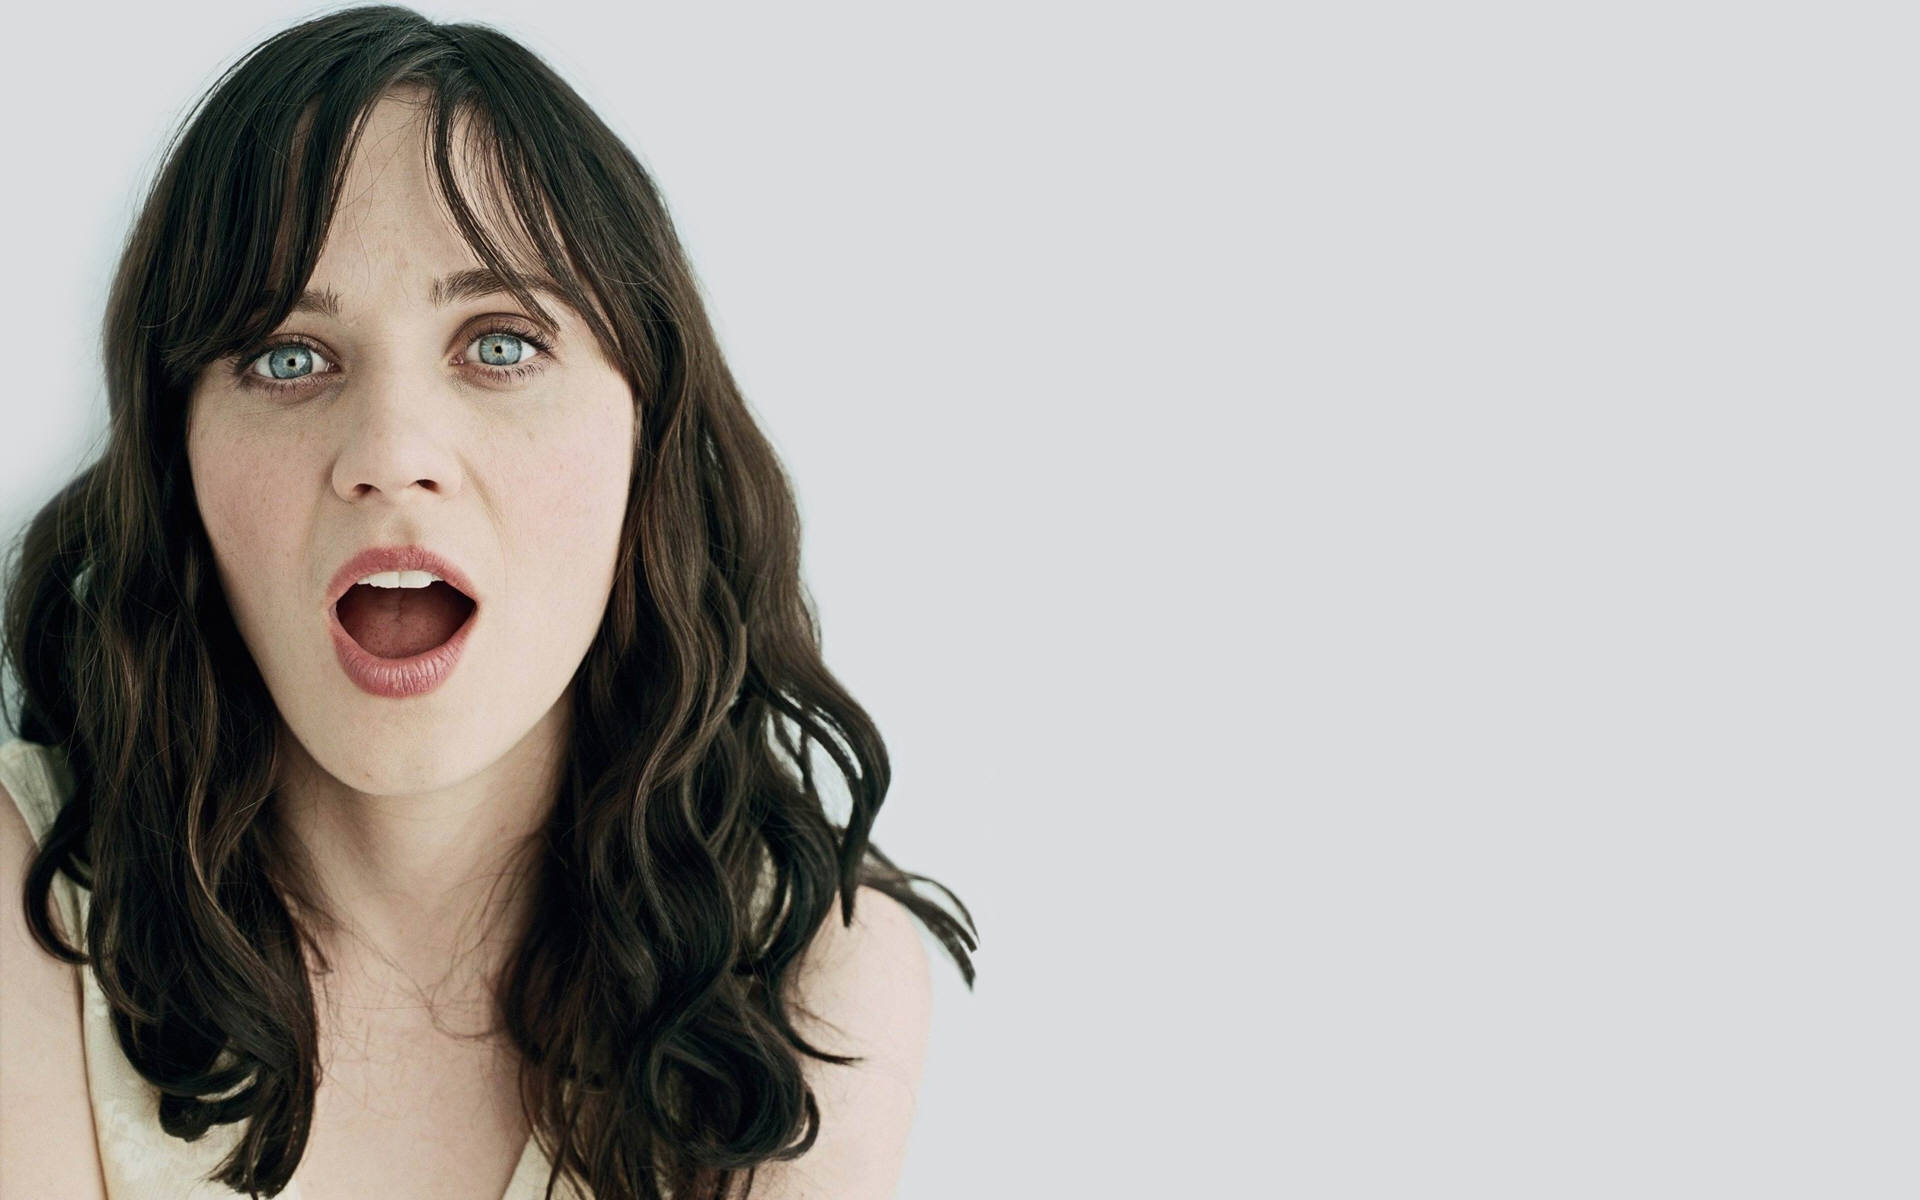 zooey deschanel hot 1920 - photo #25